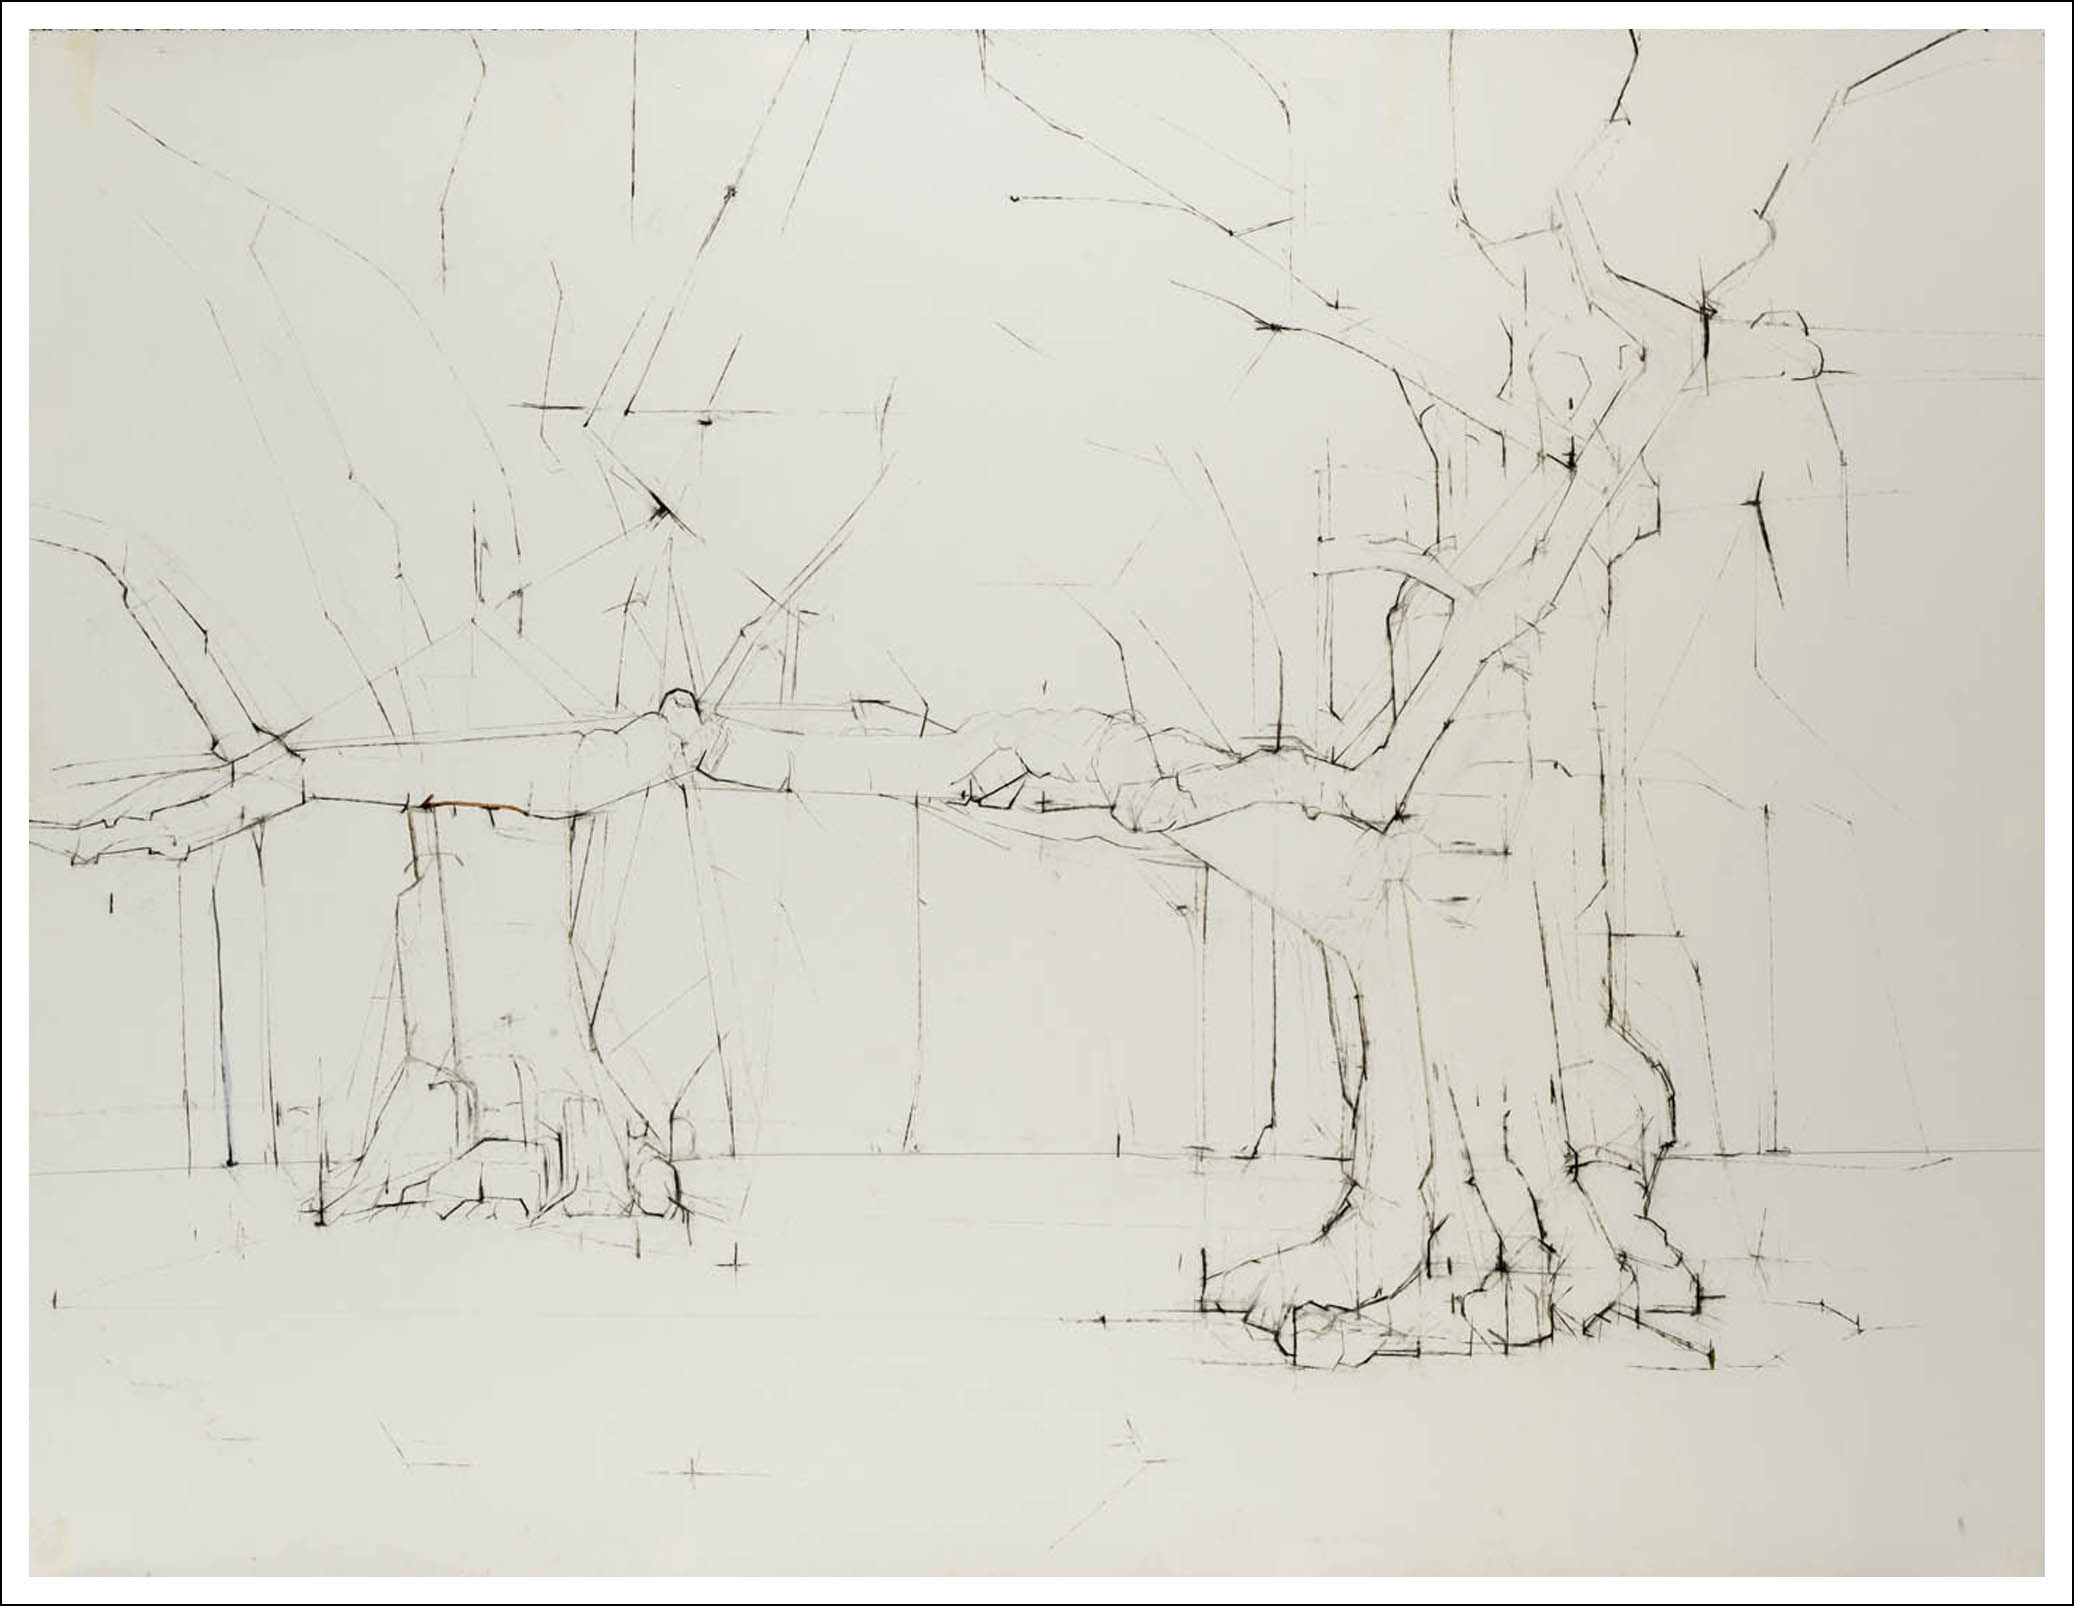 "Quercus Rubra L. 344° 40° 47' 21.1"" N 73° 57' 34.6"" W  , 2009, Charcoal, pencil on paper (38.25 inches x 50 inches)"